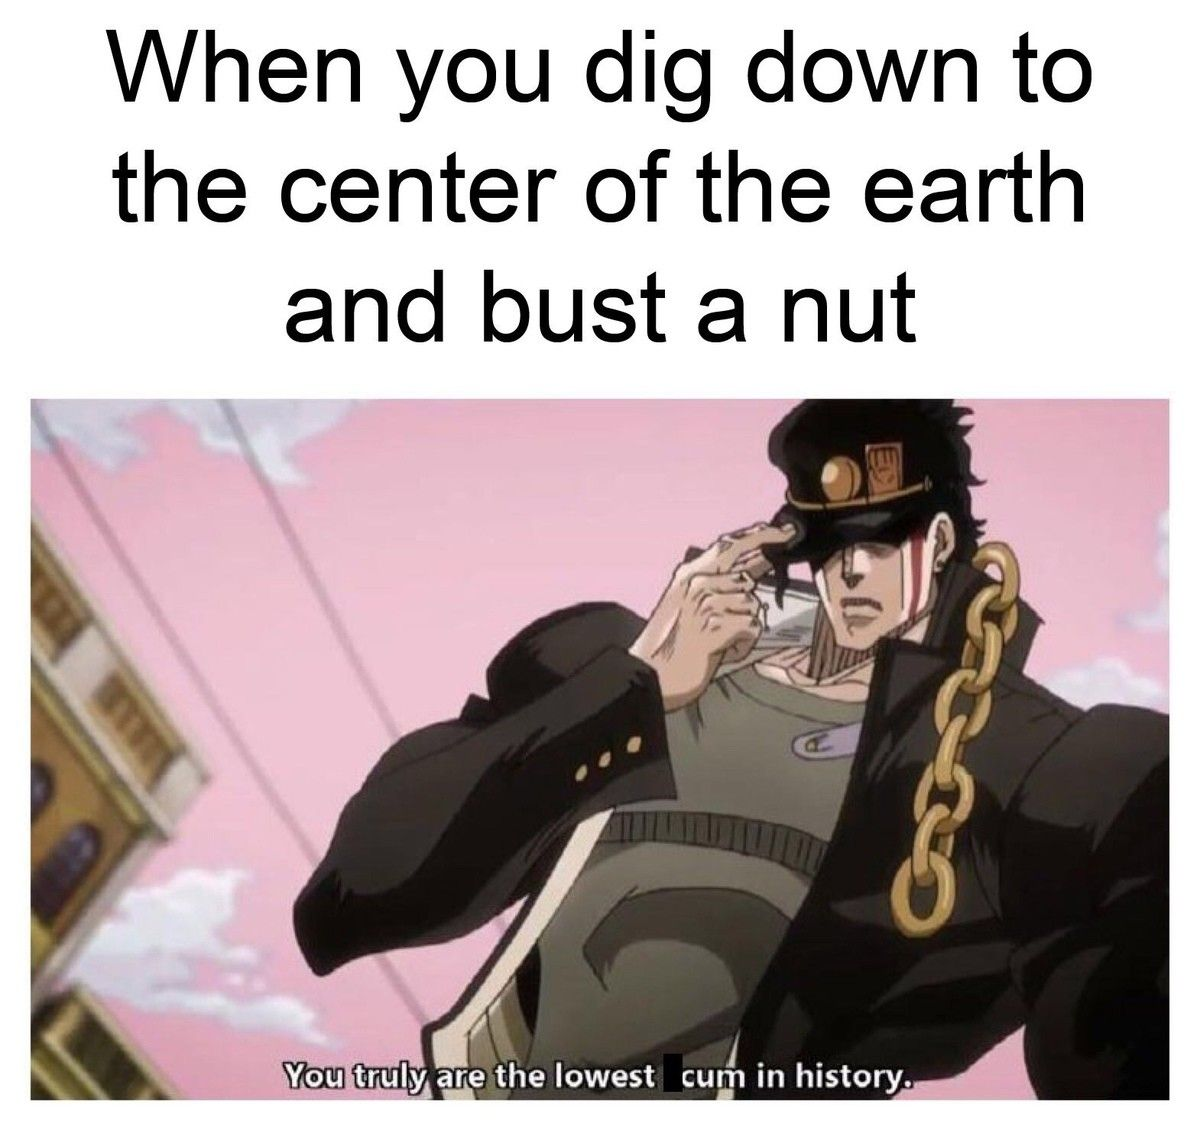 When you're down there, you experience 0G